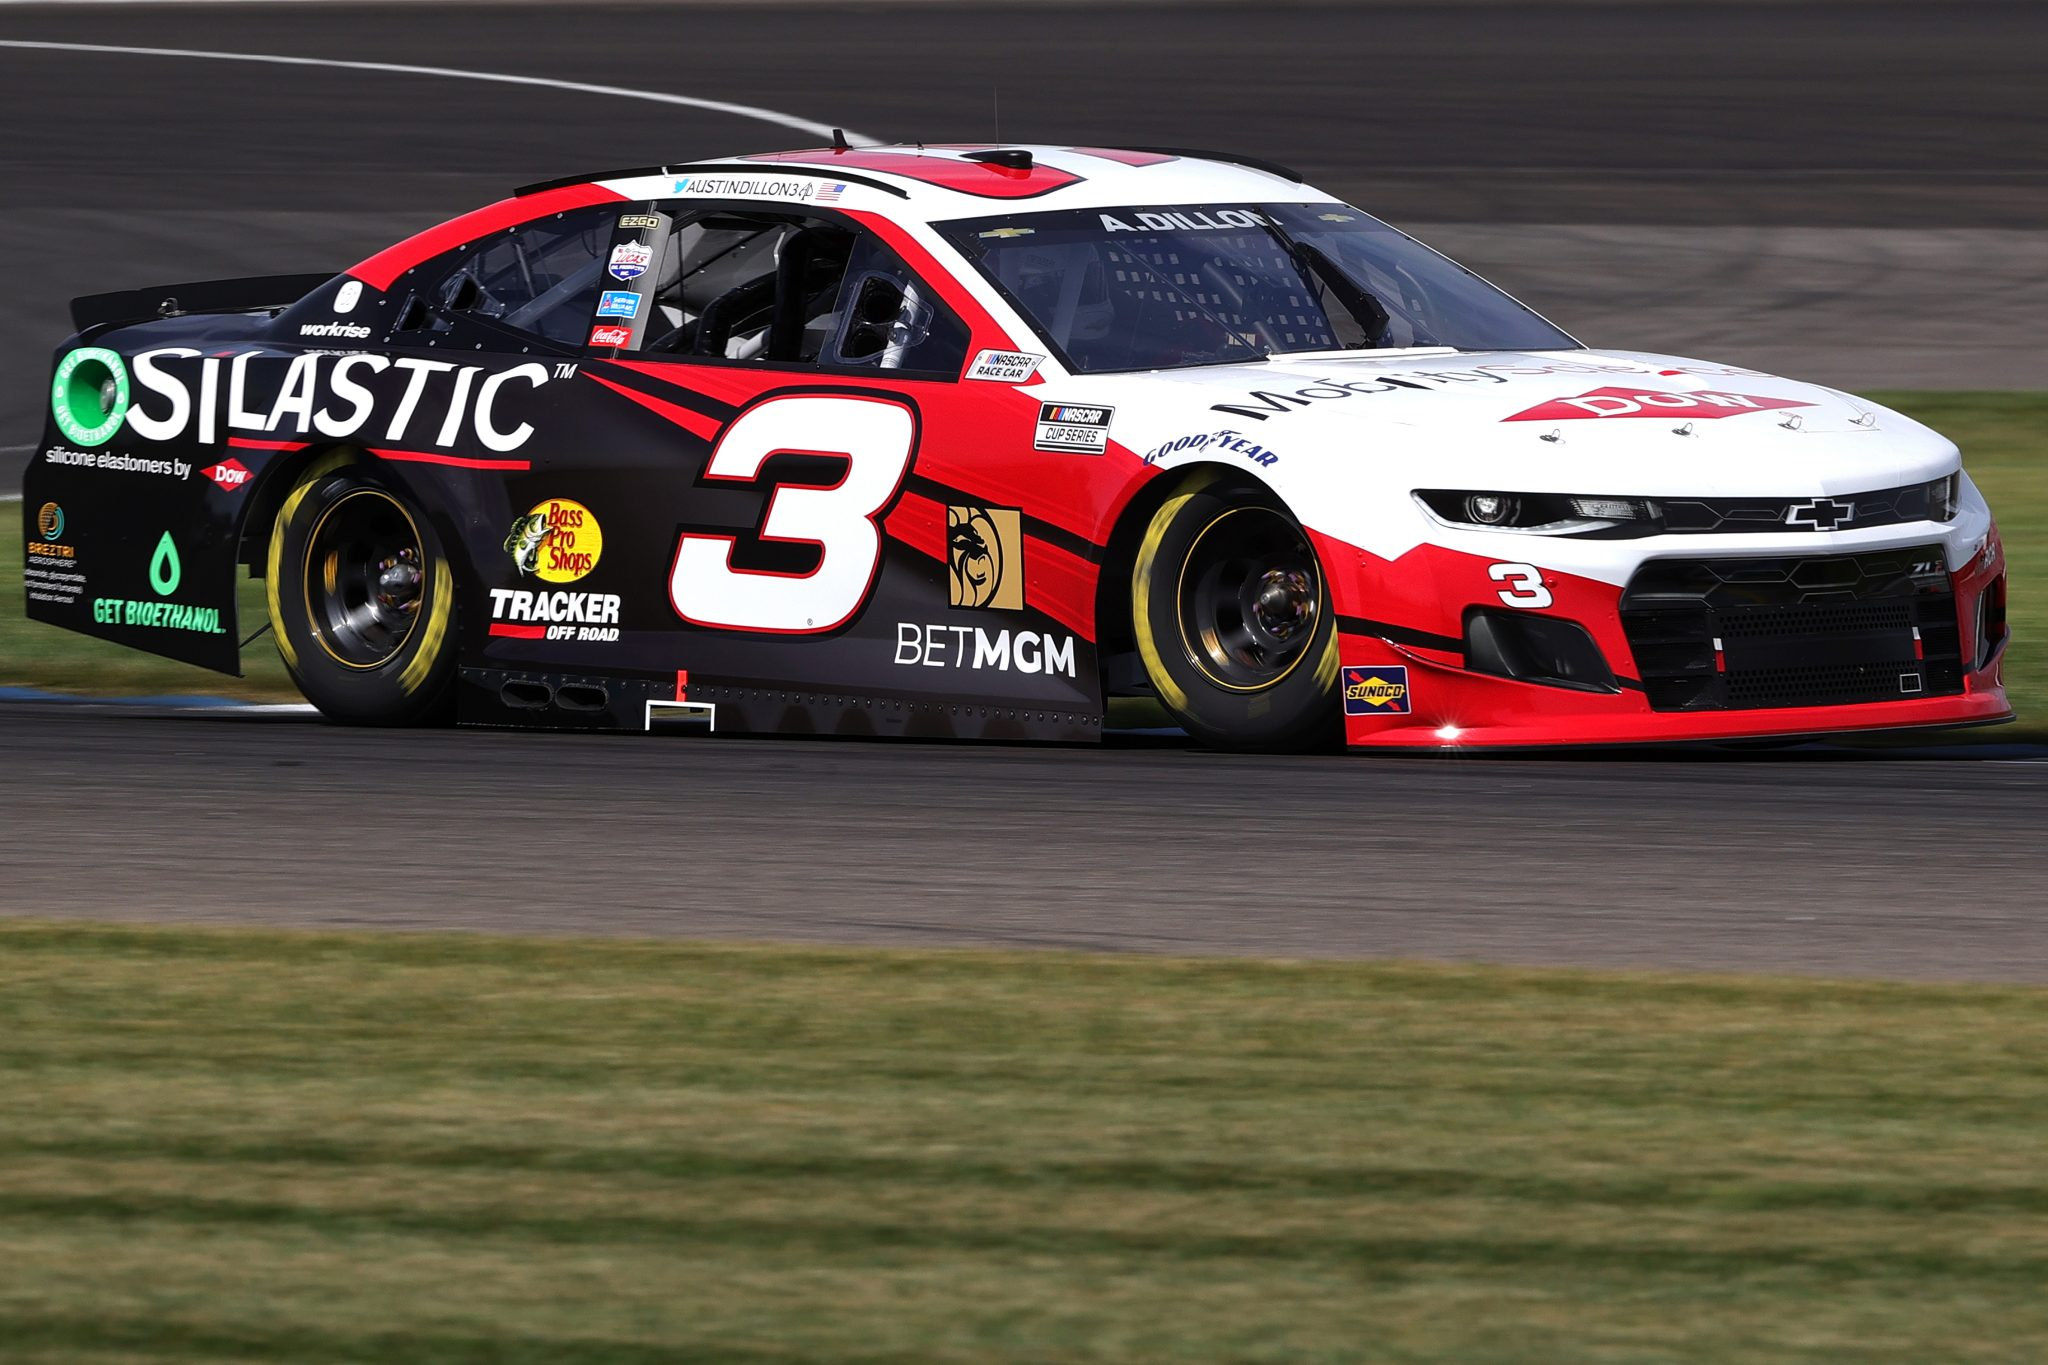 INDIANAPOLIS, INDIANA - AUGUST 14: Austin Dillon, driver of the #3 Dow MobilityScience Chevrolet, drives during practice for the NASCAR Cup Series Verizon 200 at the Brickyard at Indianapolis Motor Speedway on August 14, 2021 in Indianapolis, Indiana. (Photo by Stacy Revere/Getty Images)   Getty Images